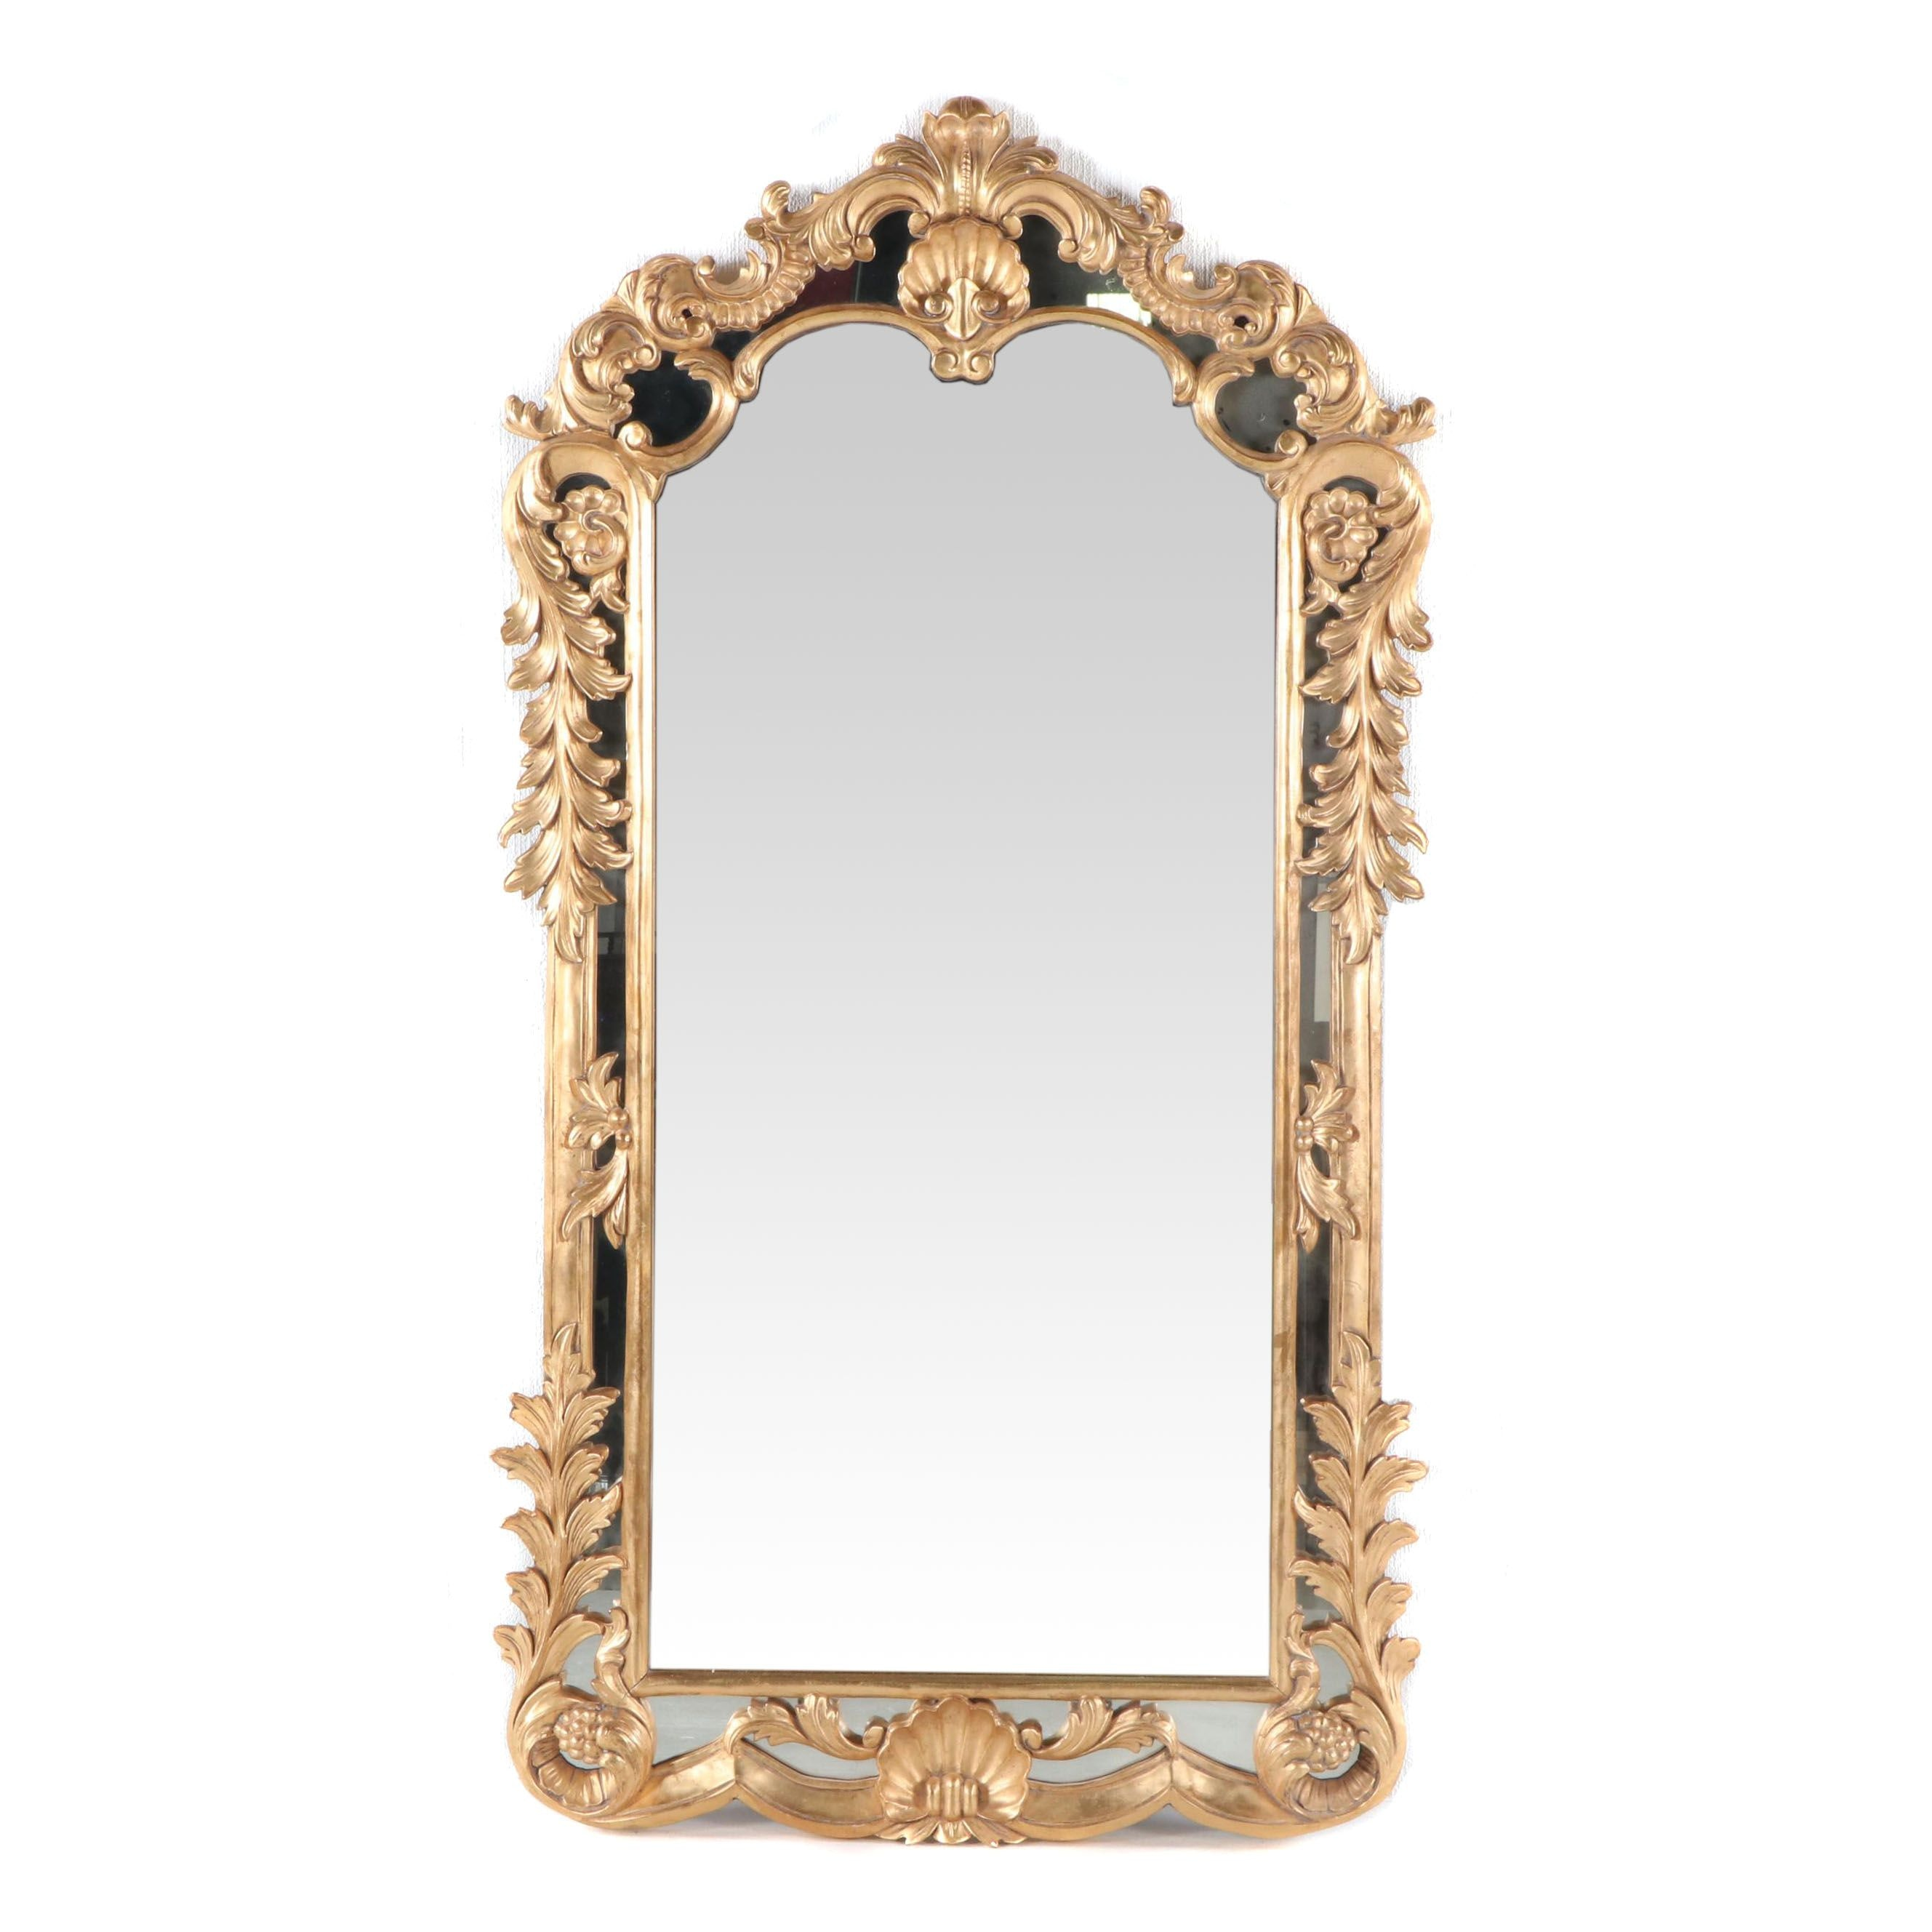 Large Baroque Style Gold Tone Accent Mirror with Rocialle Decoration